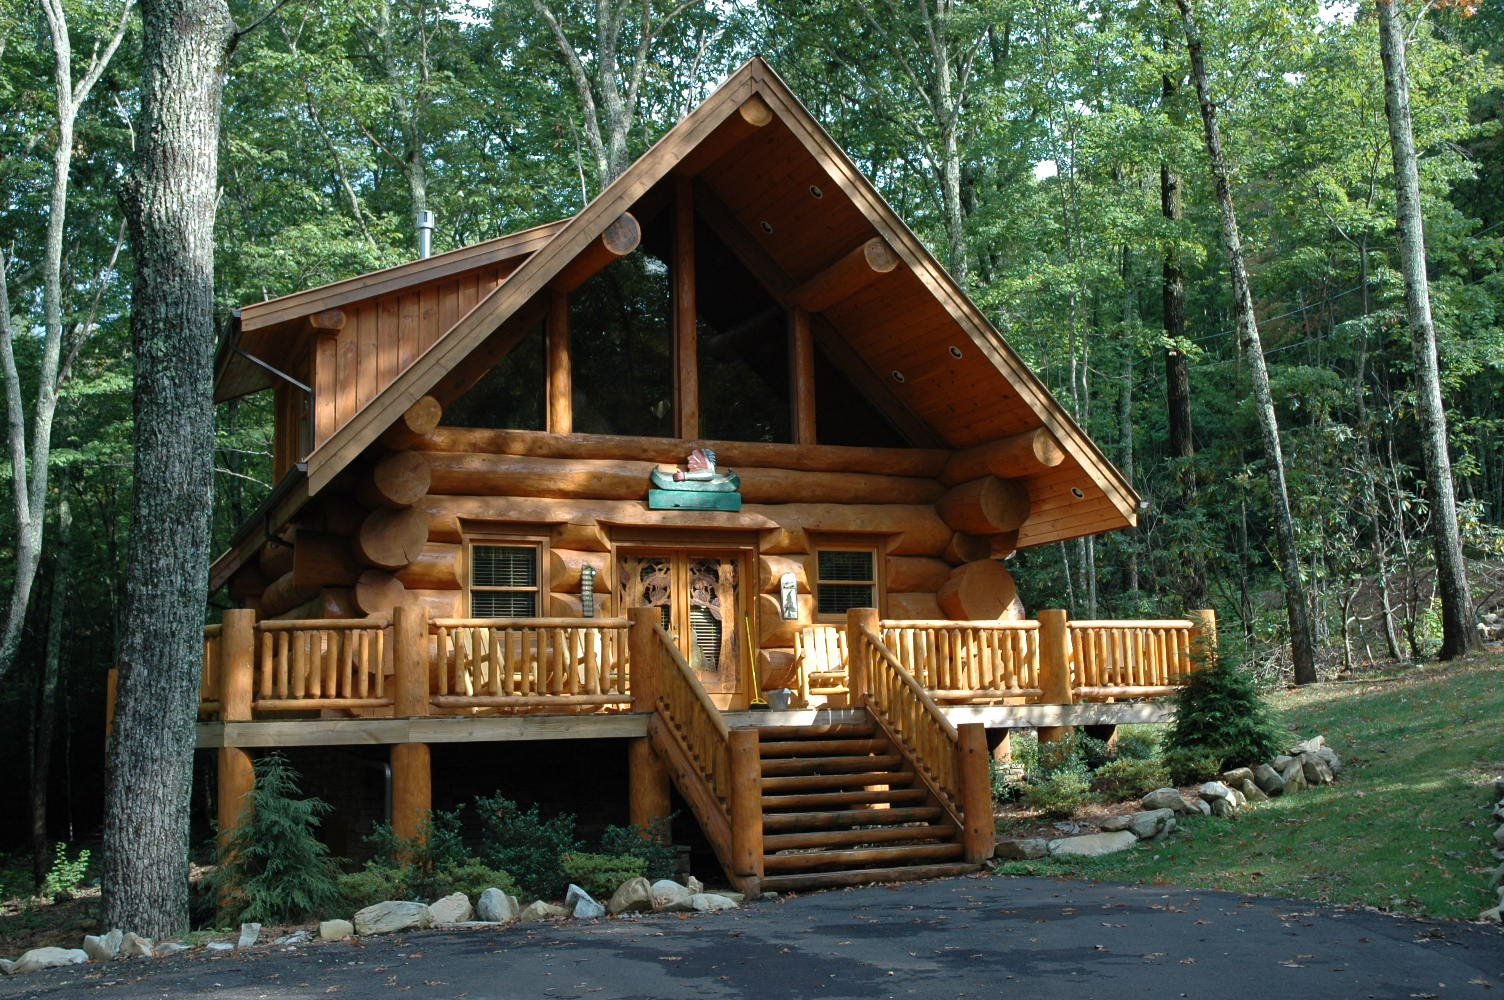 History of log cabins in the united states smoky Smoky mountain nc cabin rentals